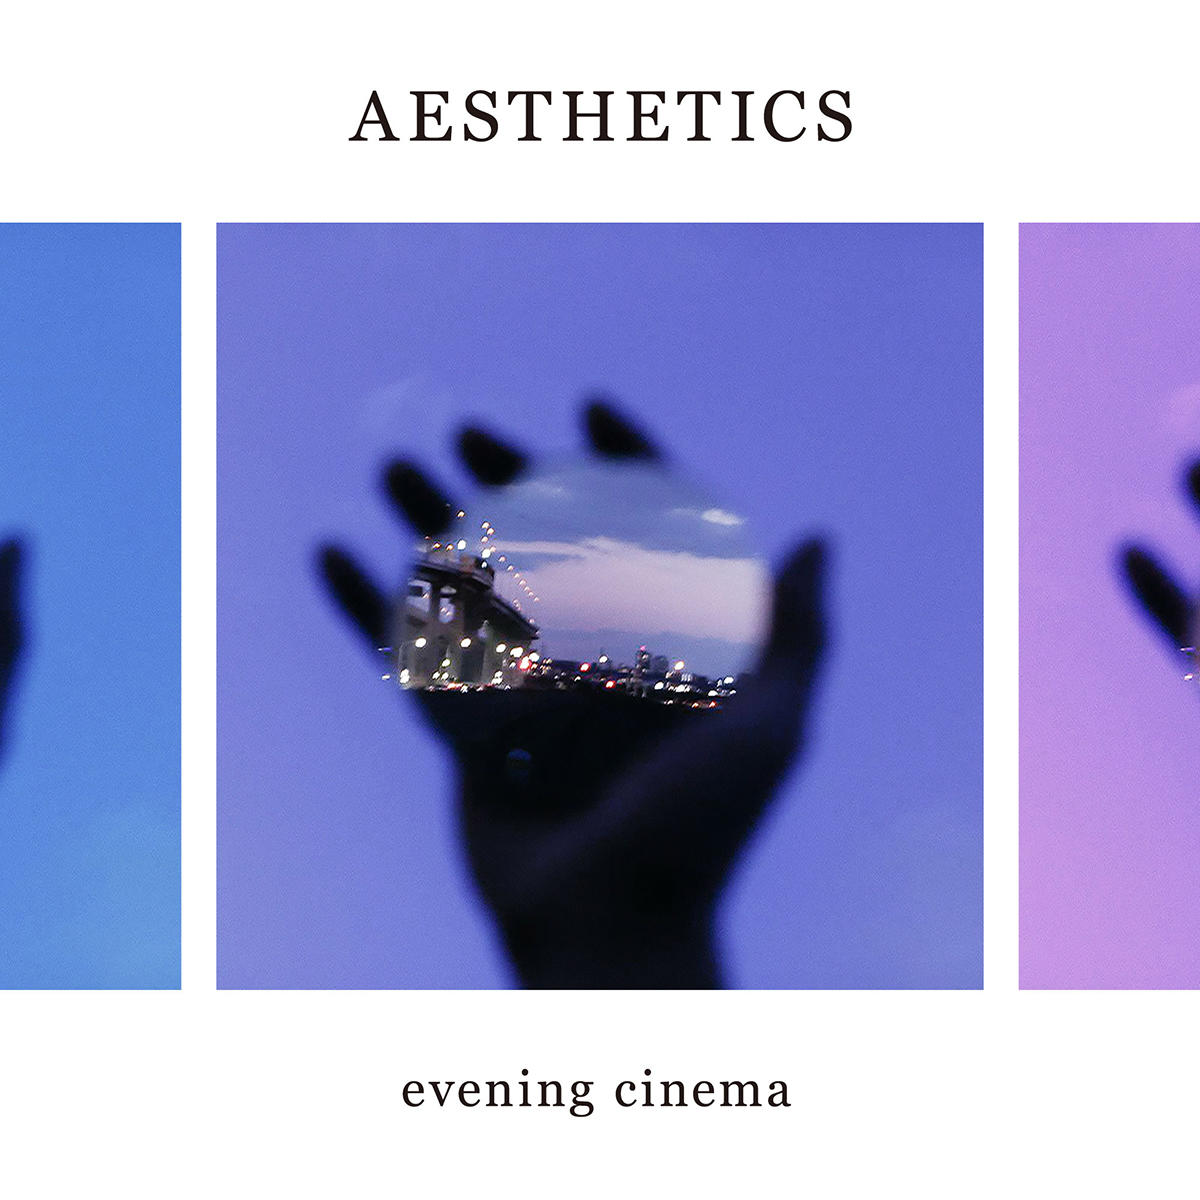 eveningcinema_jk_1200.jpg